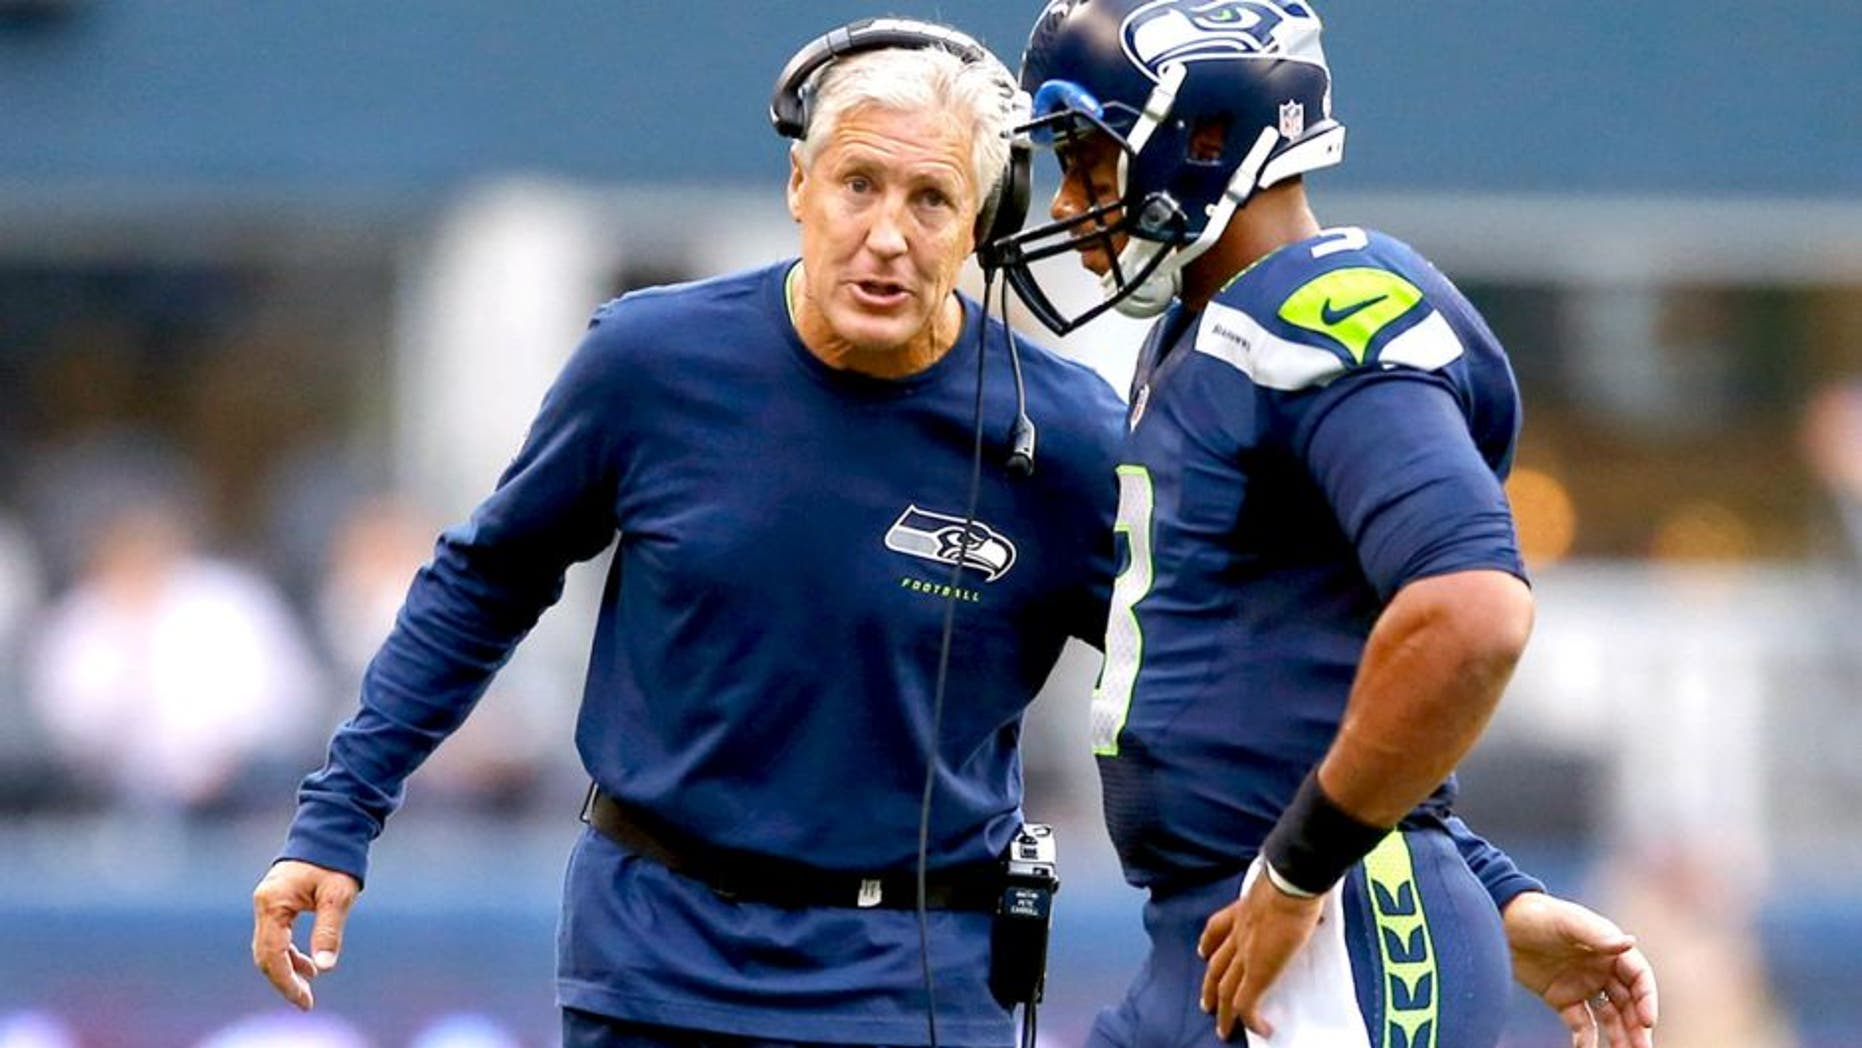 SEATTLE, WA - AUGUST 15: Quarterback Russell Wilson #3 of the Seattle Seahawks talks with head coach Pete Carroll against the San Diego Chargers at CenturyLink Field on August 15, 2014 in Seattle, Washington. (Photo by Otto Greule Jr/Getty Images)